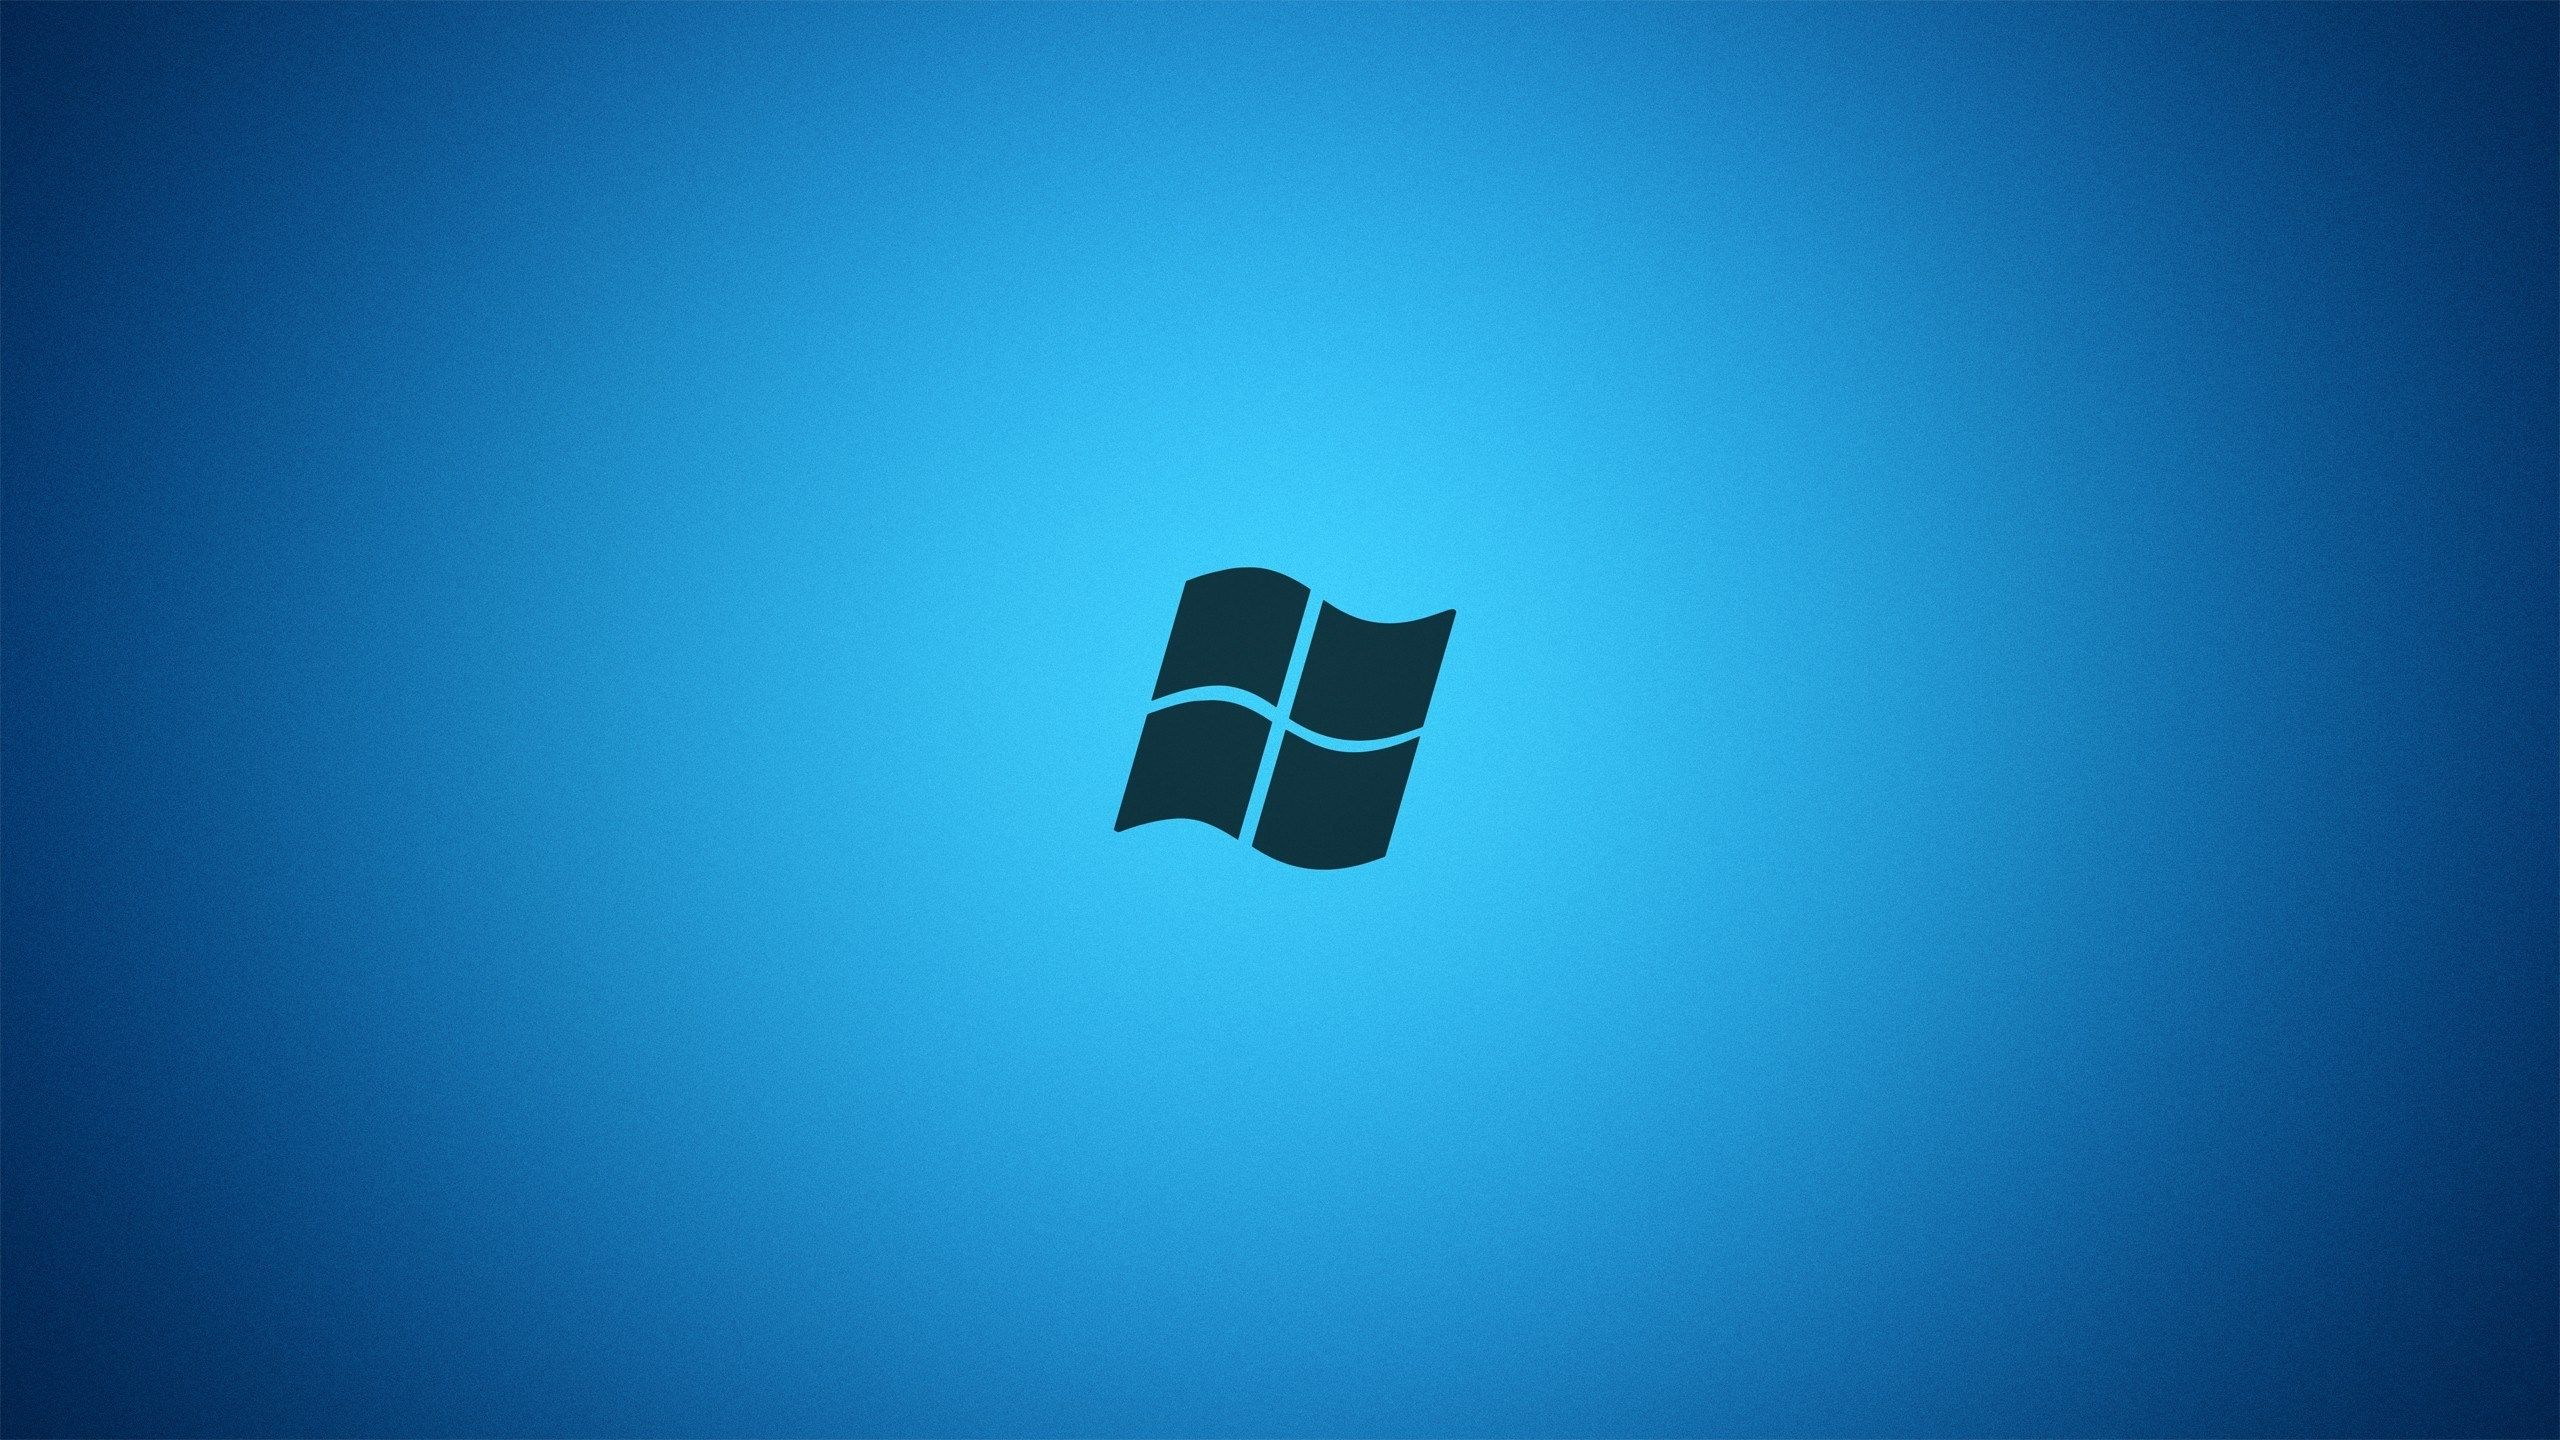 Windows 7 Simple Computer Wallpaper